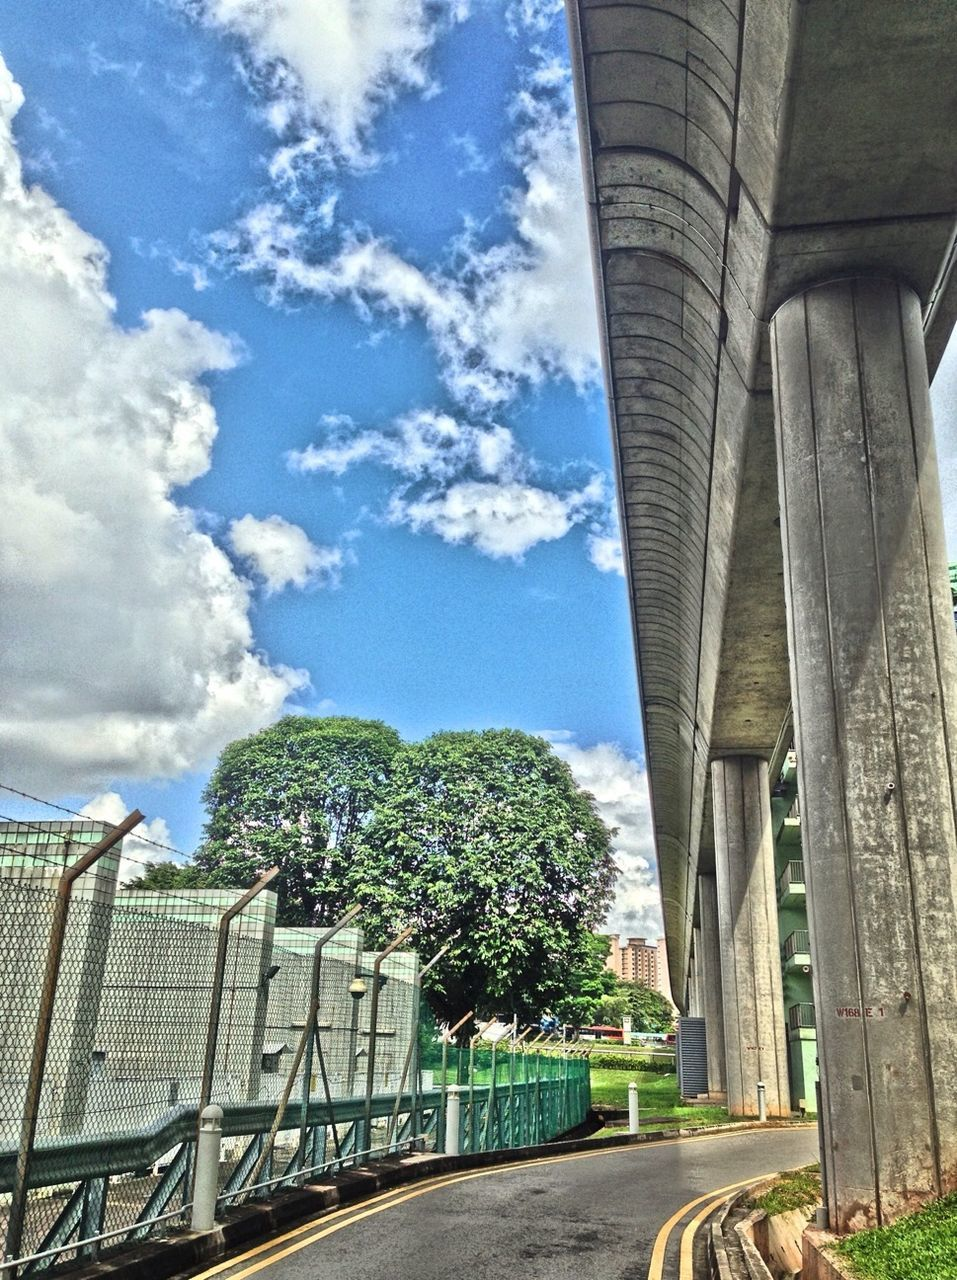 sky, day, bridge - man made structure, architecture, cloud - sky, tree, outdoors, built structure, no people, nature